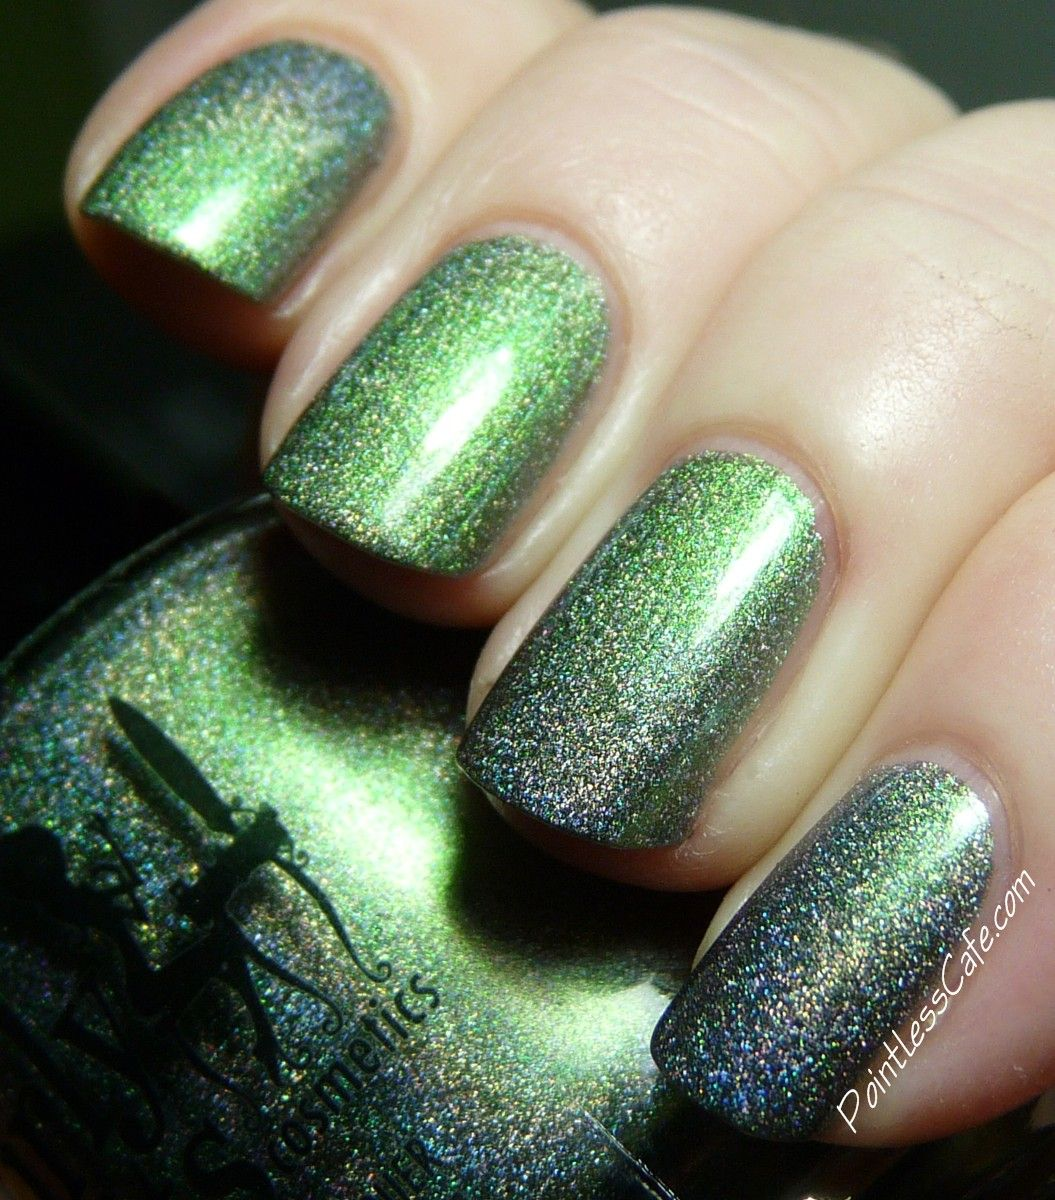 Sold MK - Girly Bits Cosmetics - Lack of Pies (used for 1 mani) $8 ...